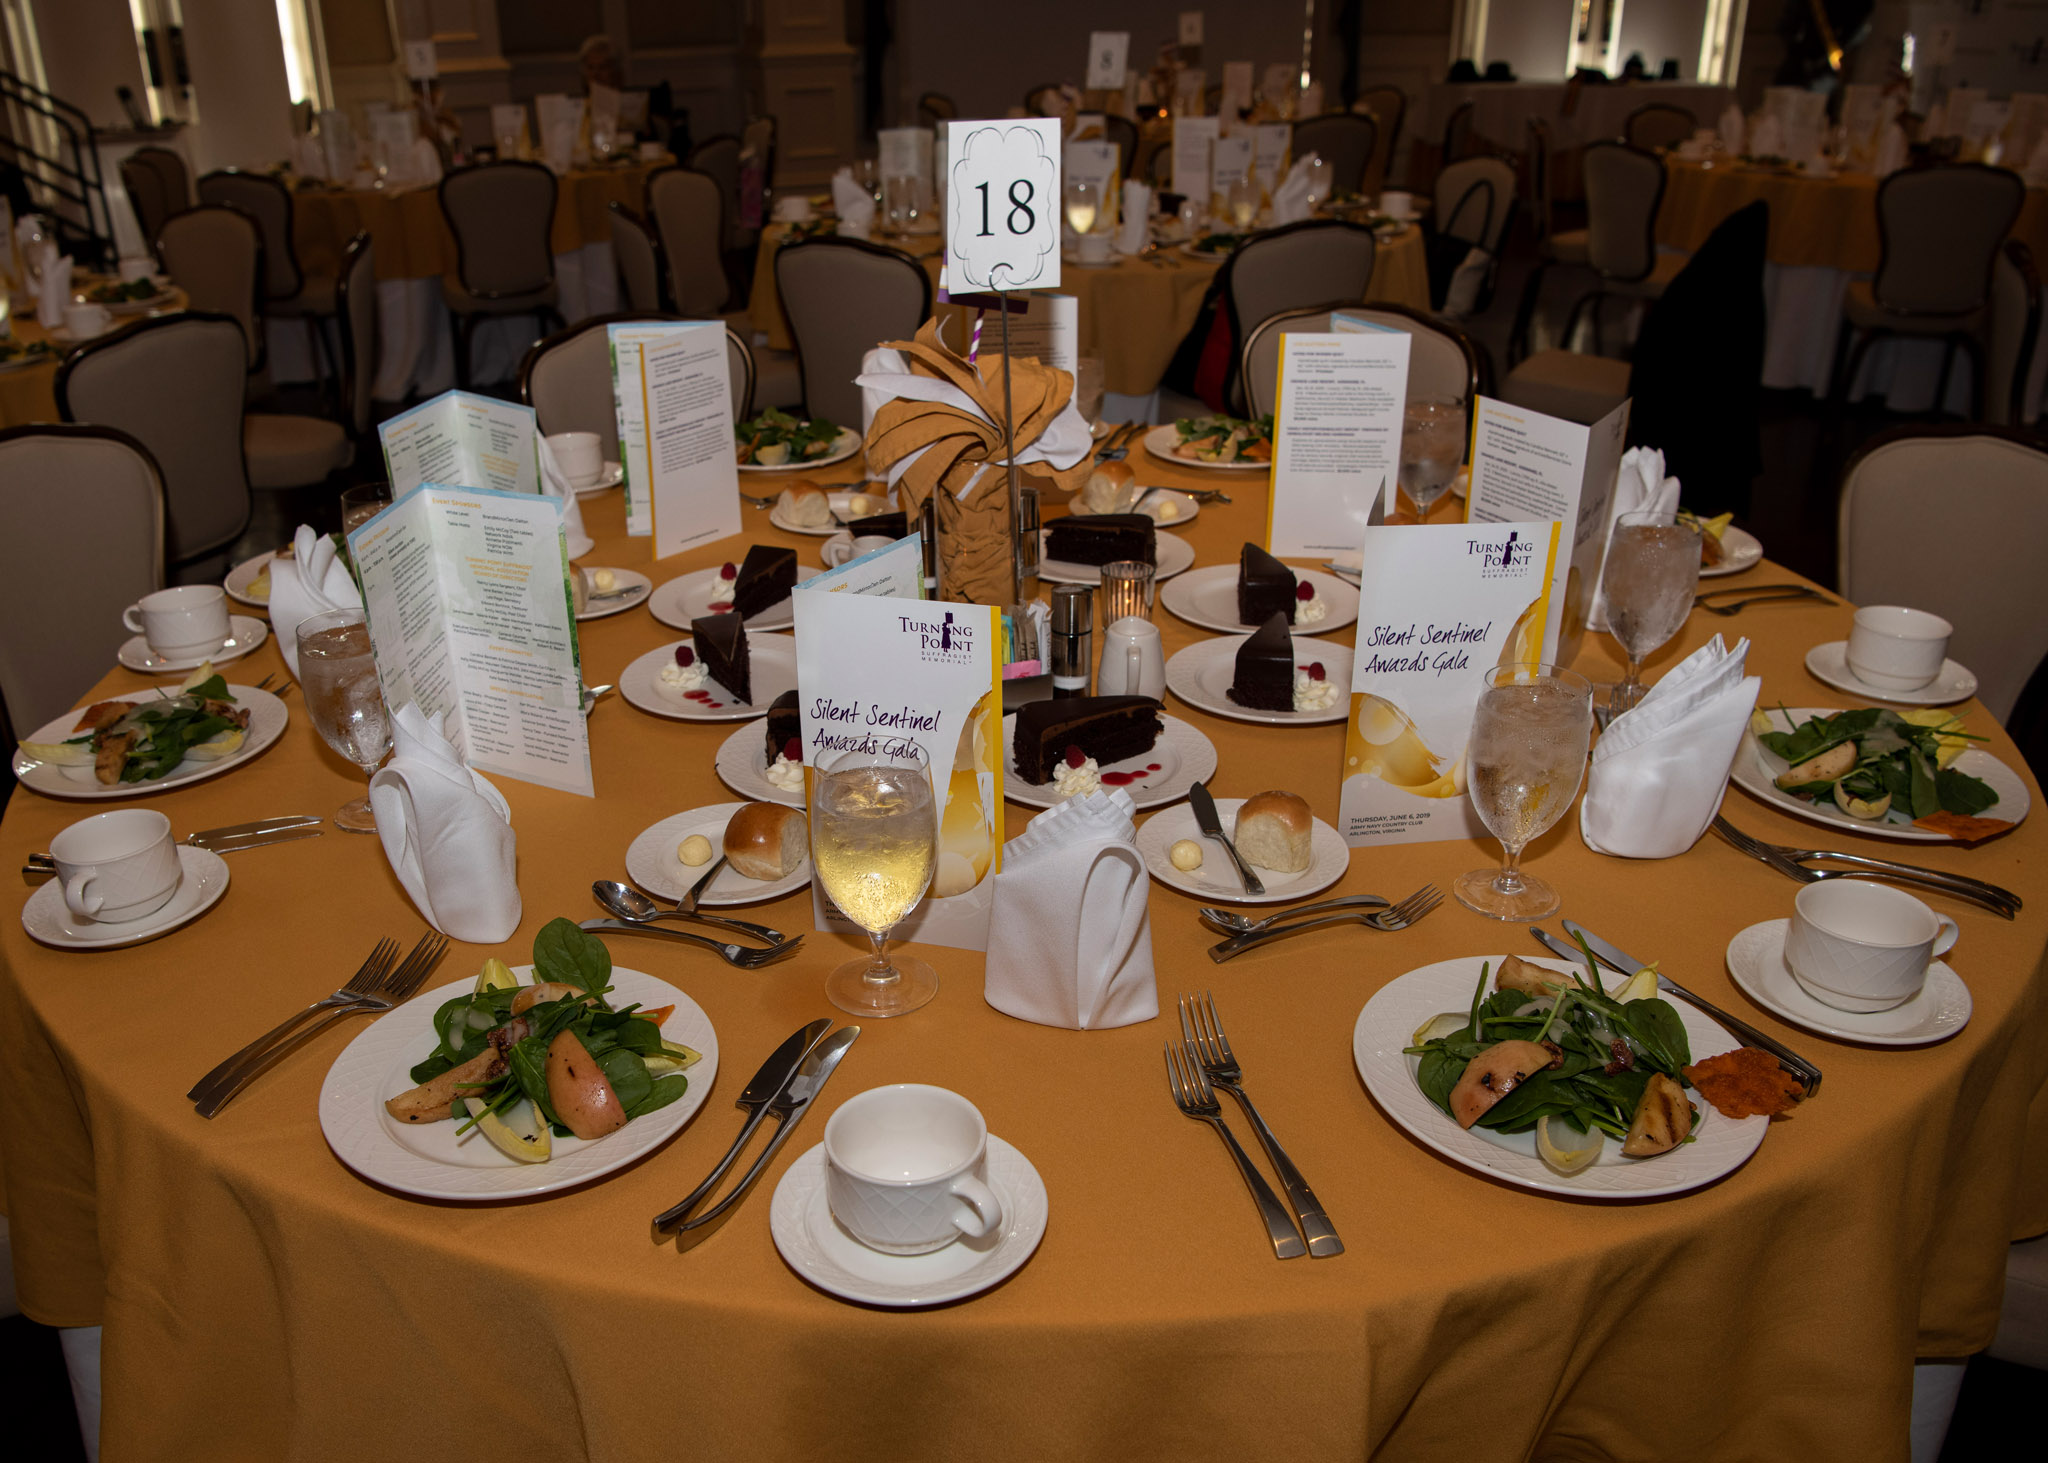 20190606-silent-sentinel-awards-gala-turning-point_020_48031603526_o